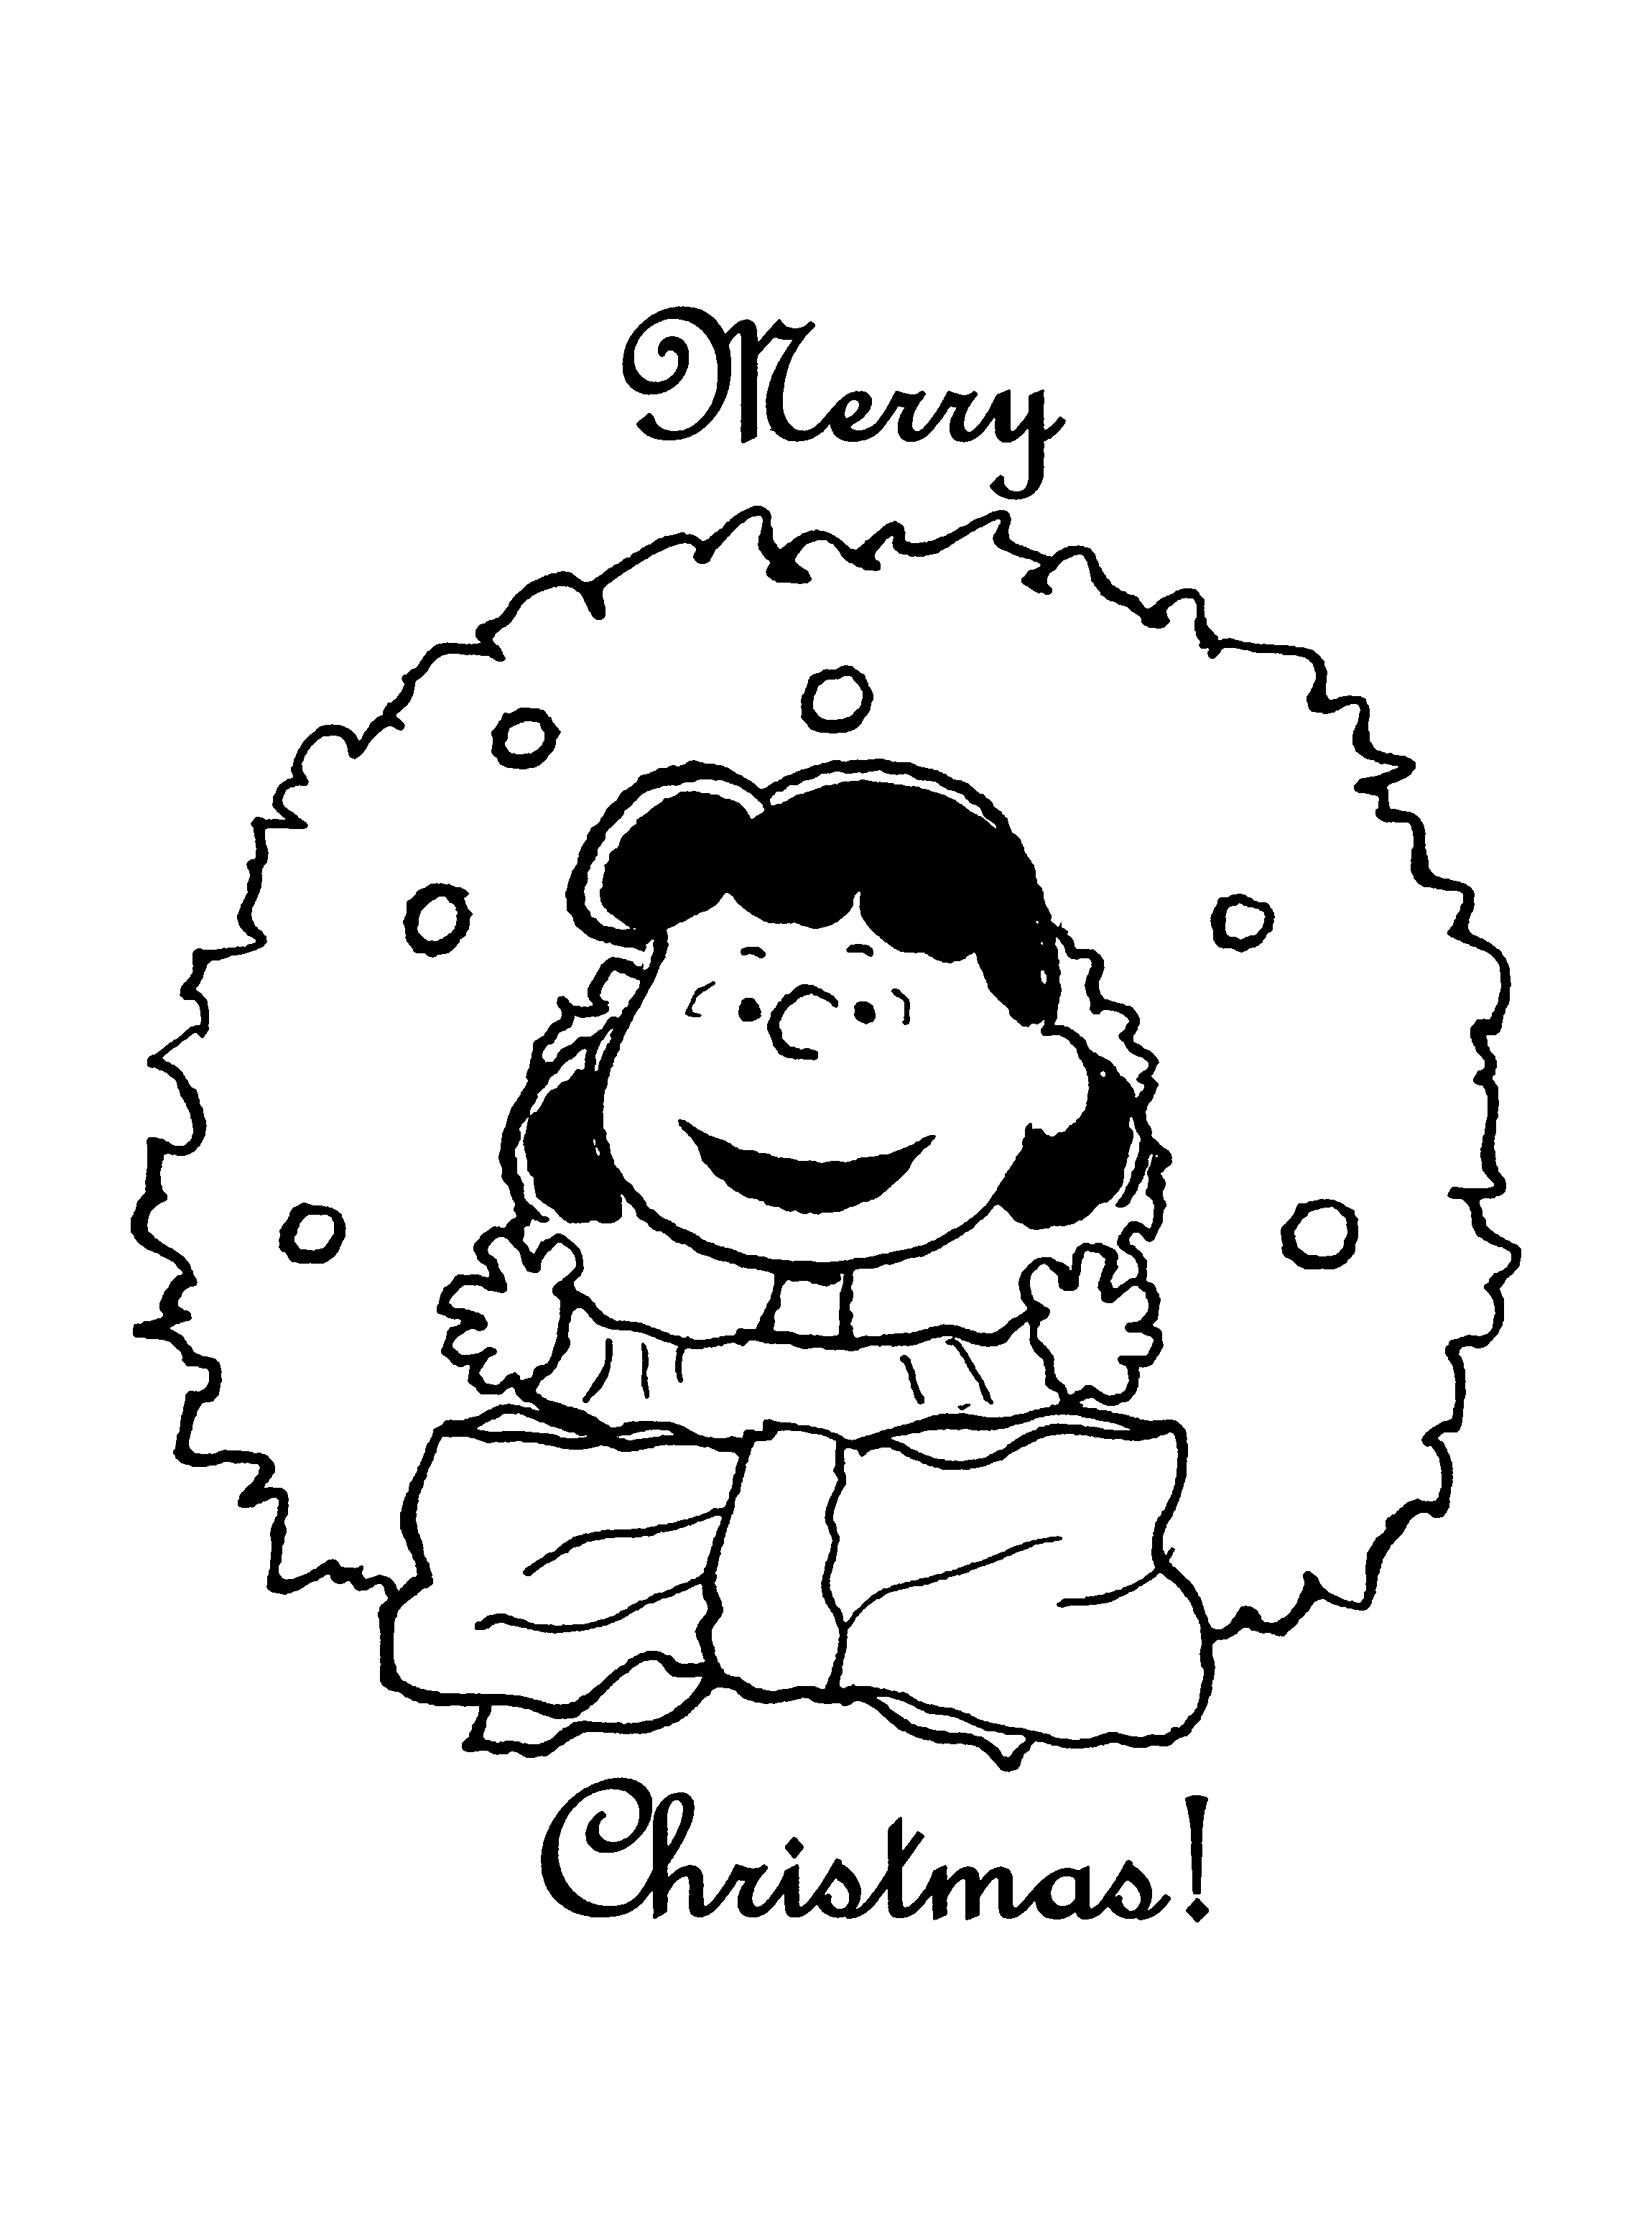 Merry Christmas! Coloring page for the students! | The Holidays ...